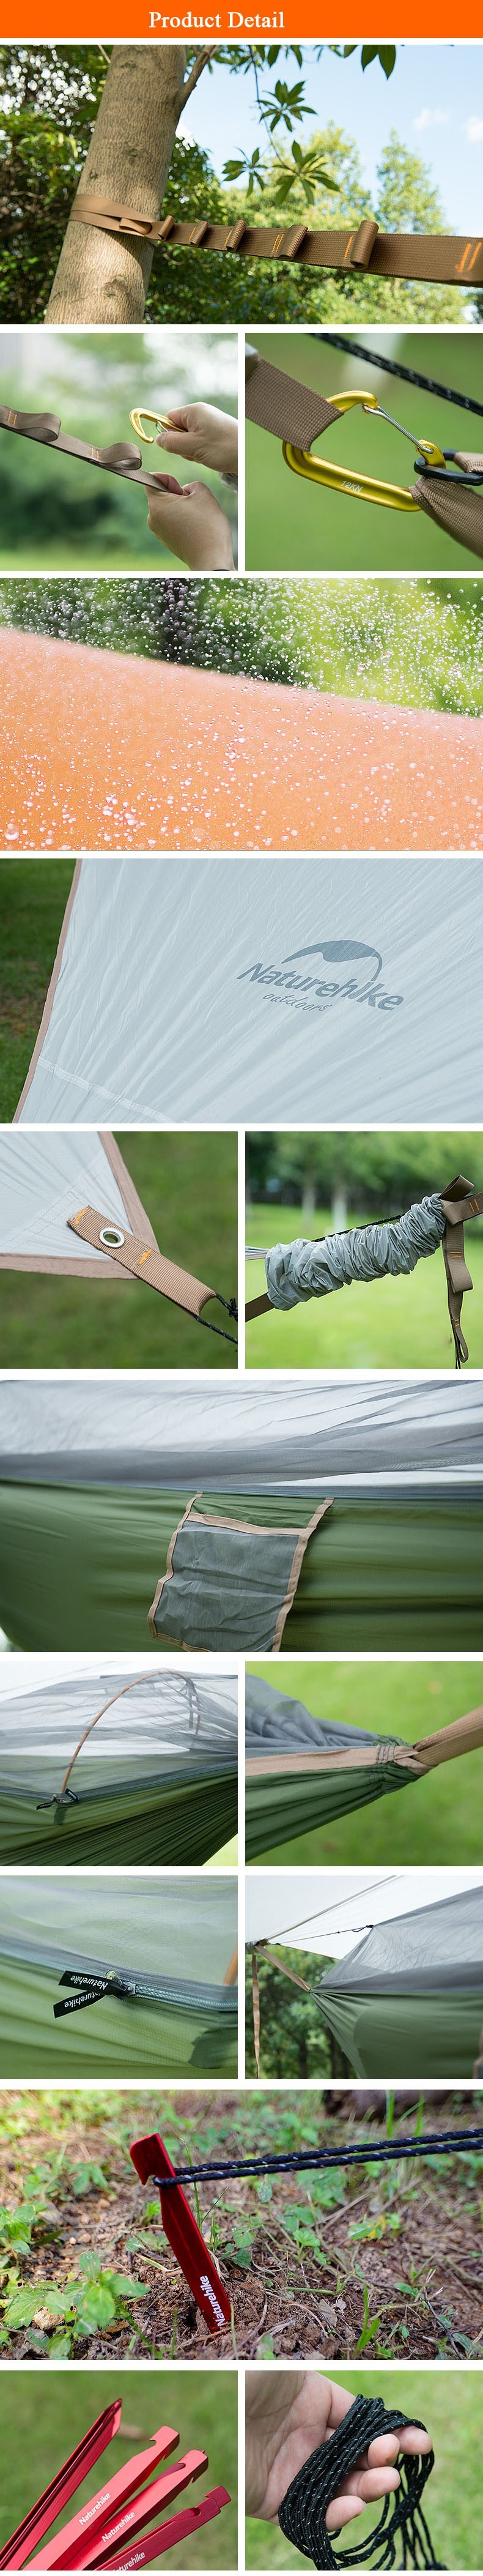 tripod the a tent inverted utilises to tentsile hammock tents remain tree person pin simple shape